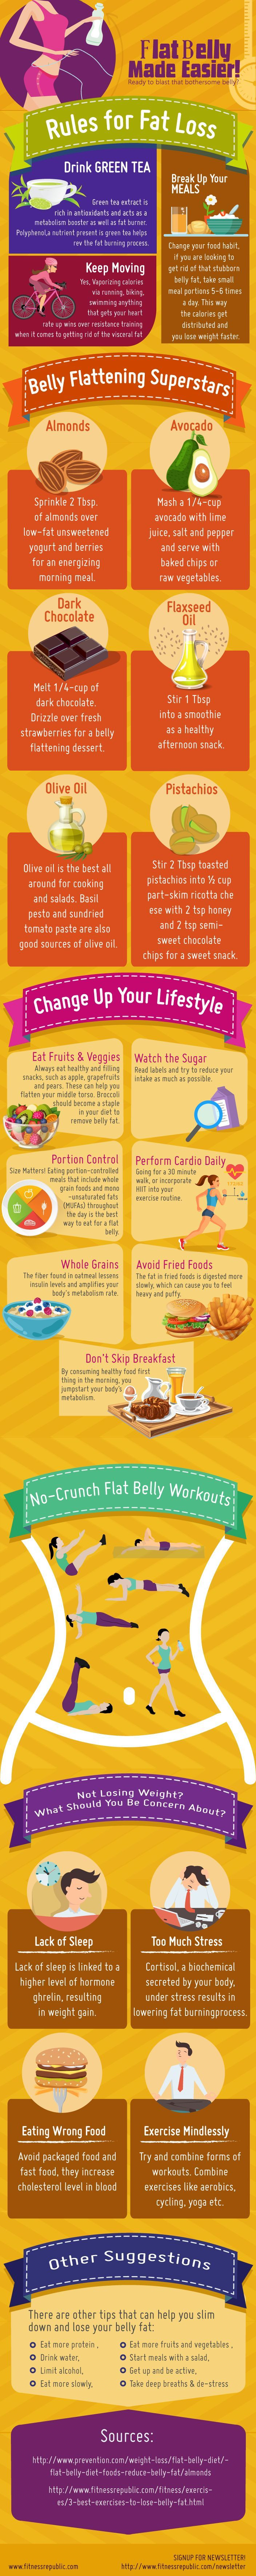 Amazing diet called Military Diet that helps you lose up to 10 pounds in 3 days and stay fit!